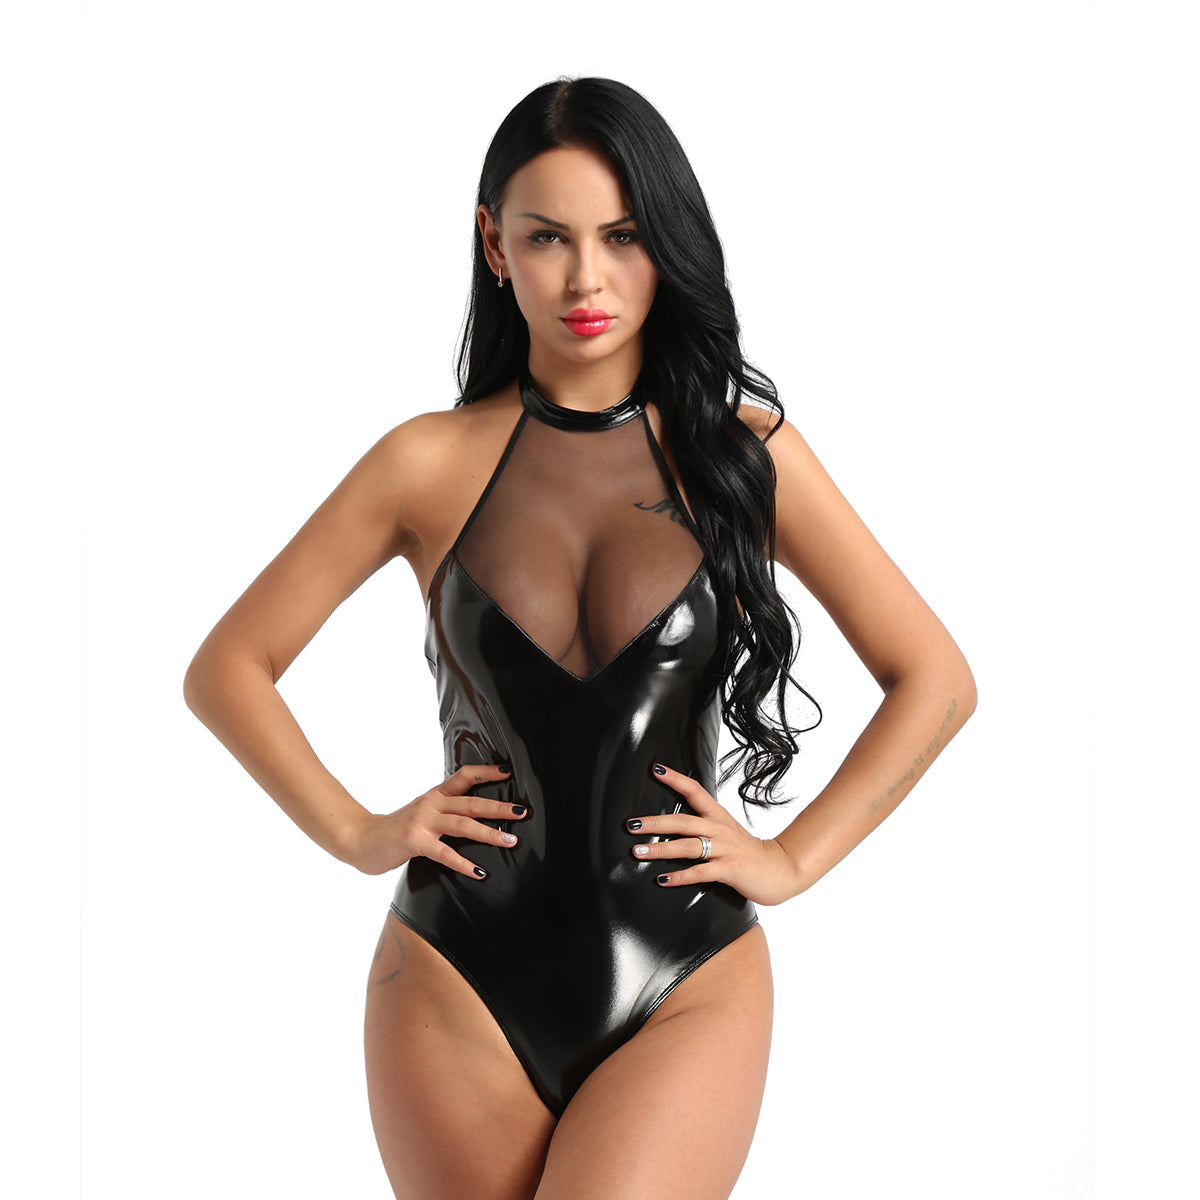 Body PVC <br> Résille